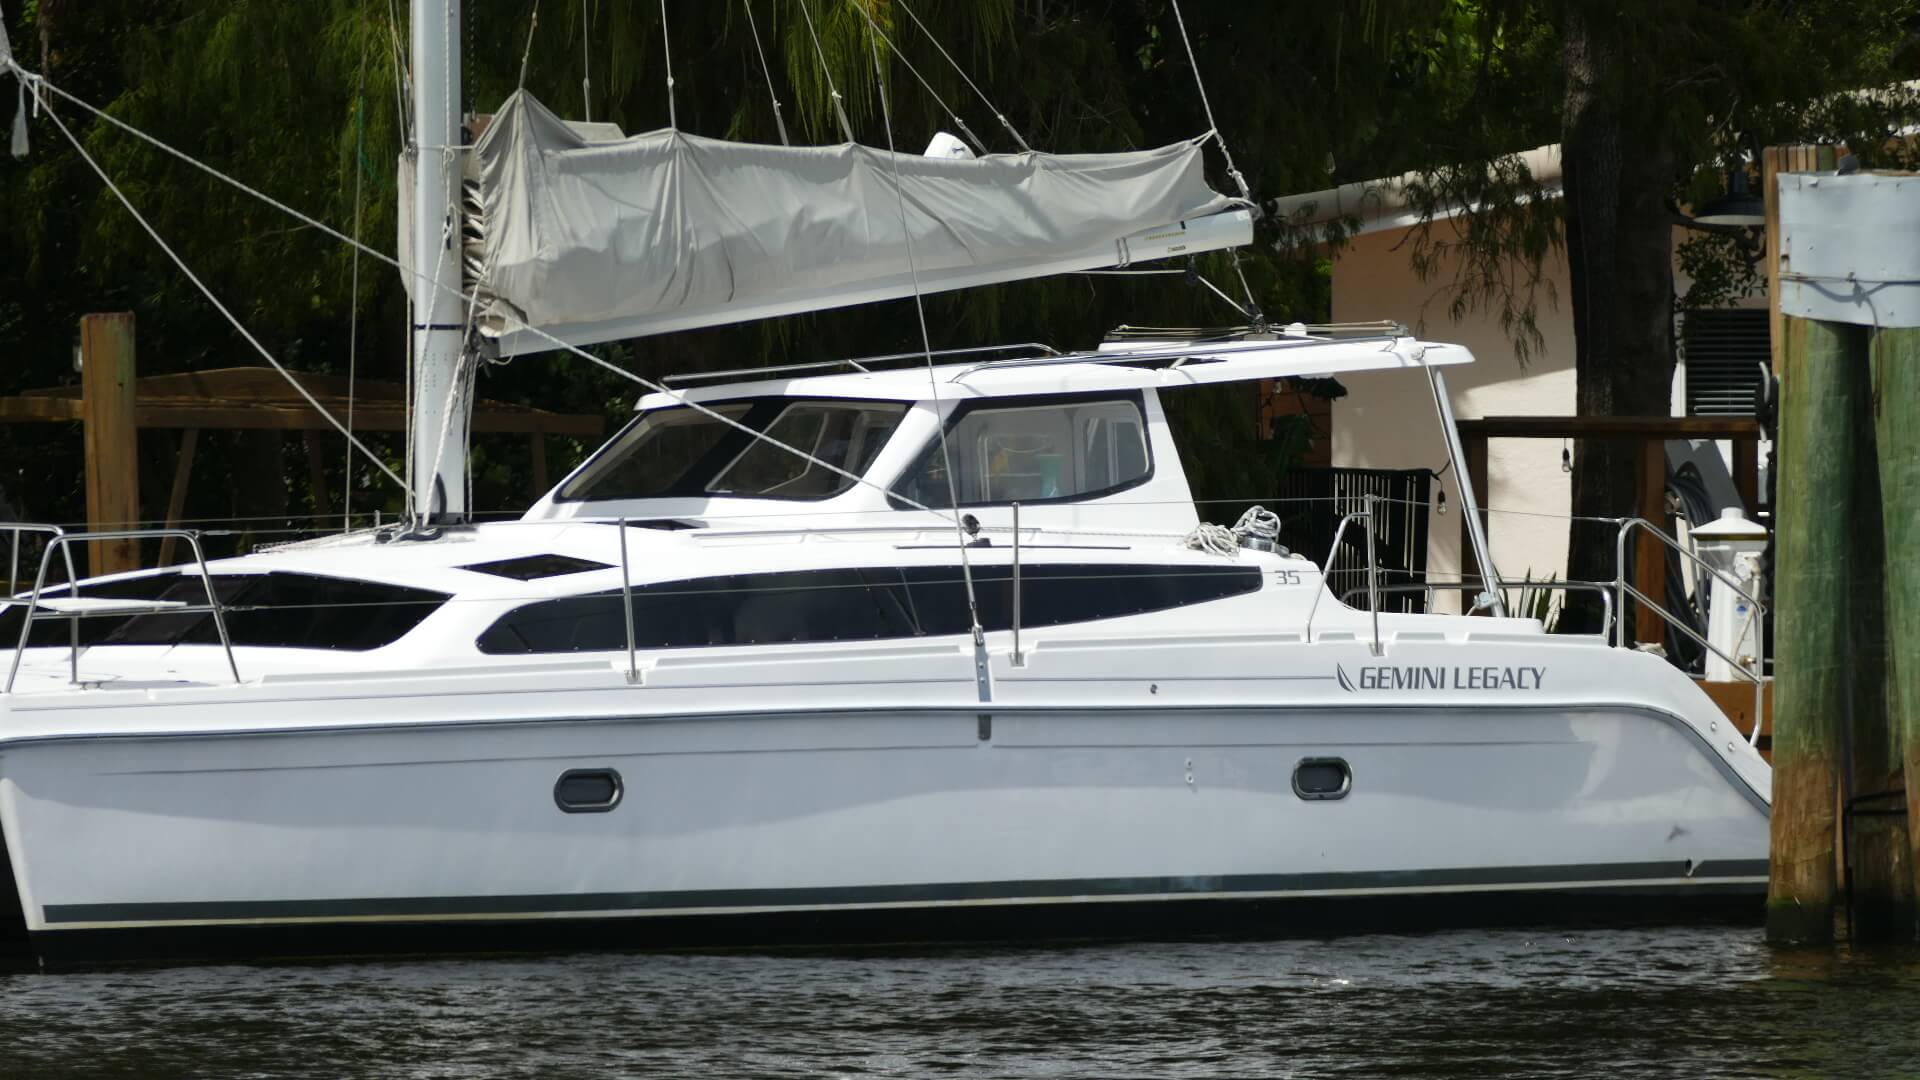 Used Sail Catamaran for Sale 2016 Legacy 35 Boat Highlights